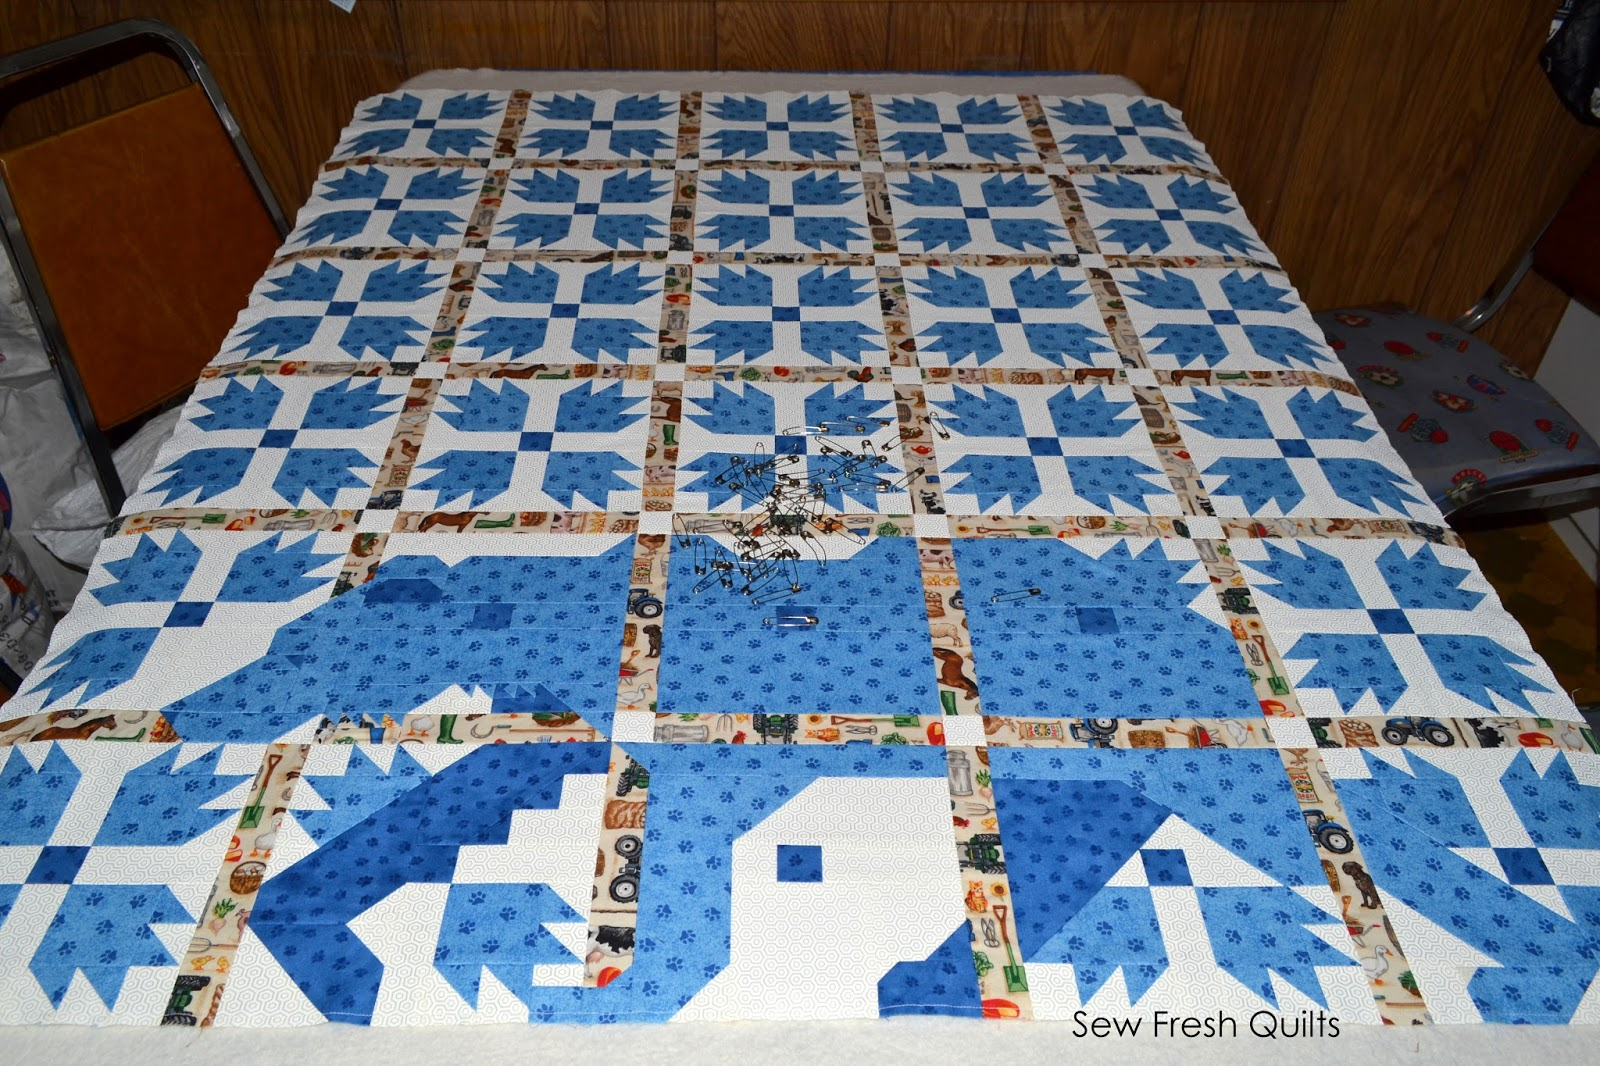 Sew Fresh Quilts Mod Bear Paw Qal Quilt Assembly